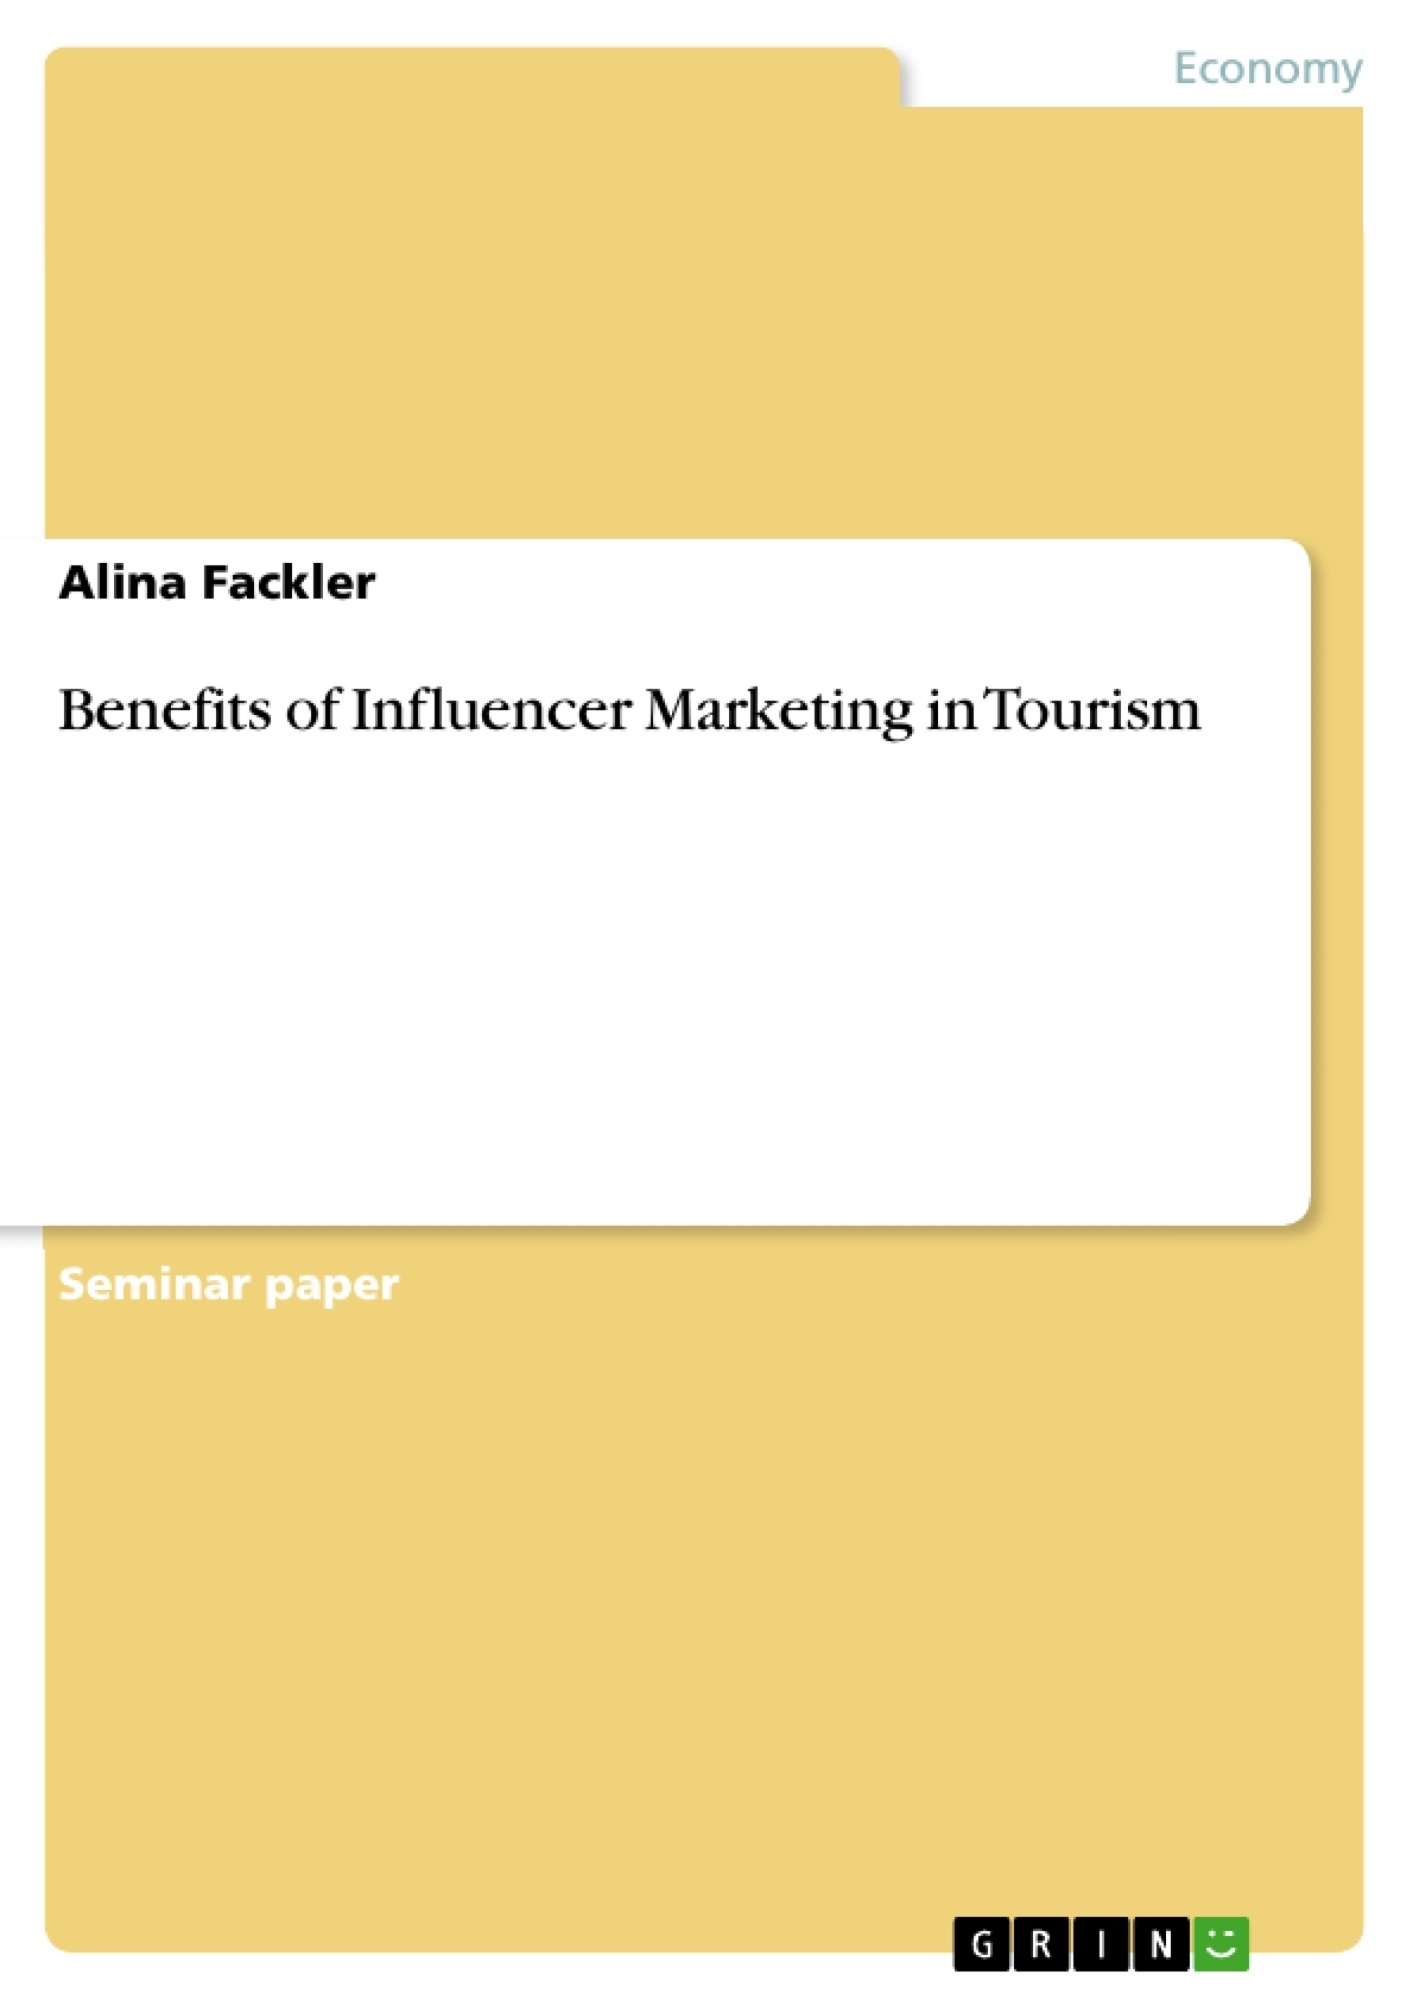 Title: Benefits of Influencer Marketing in Tourism